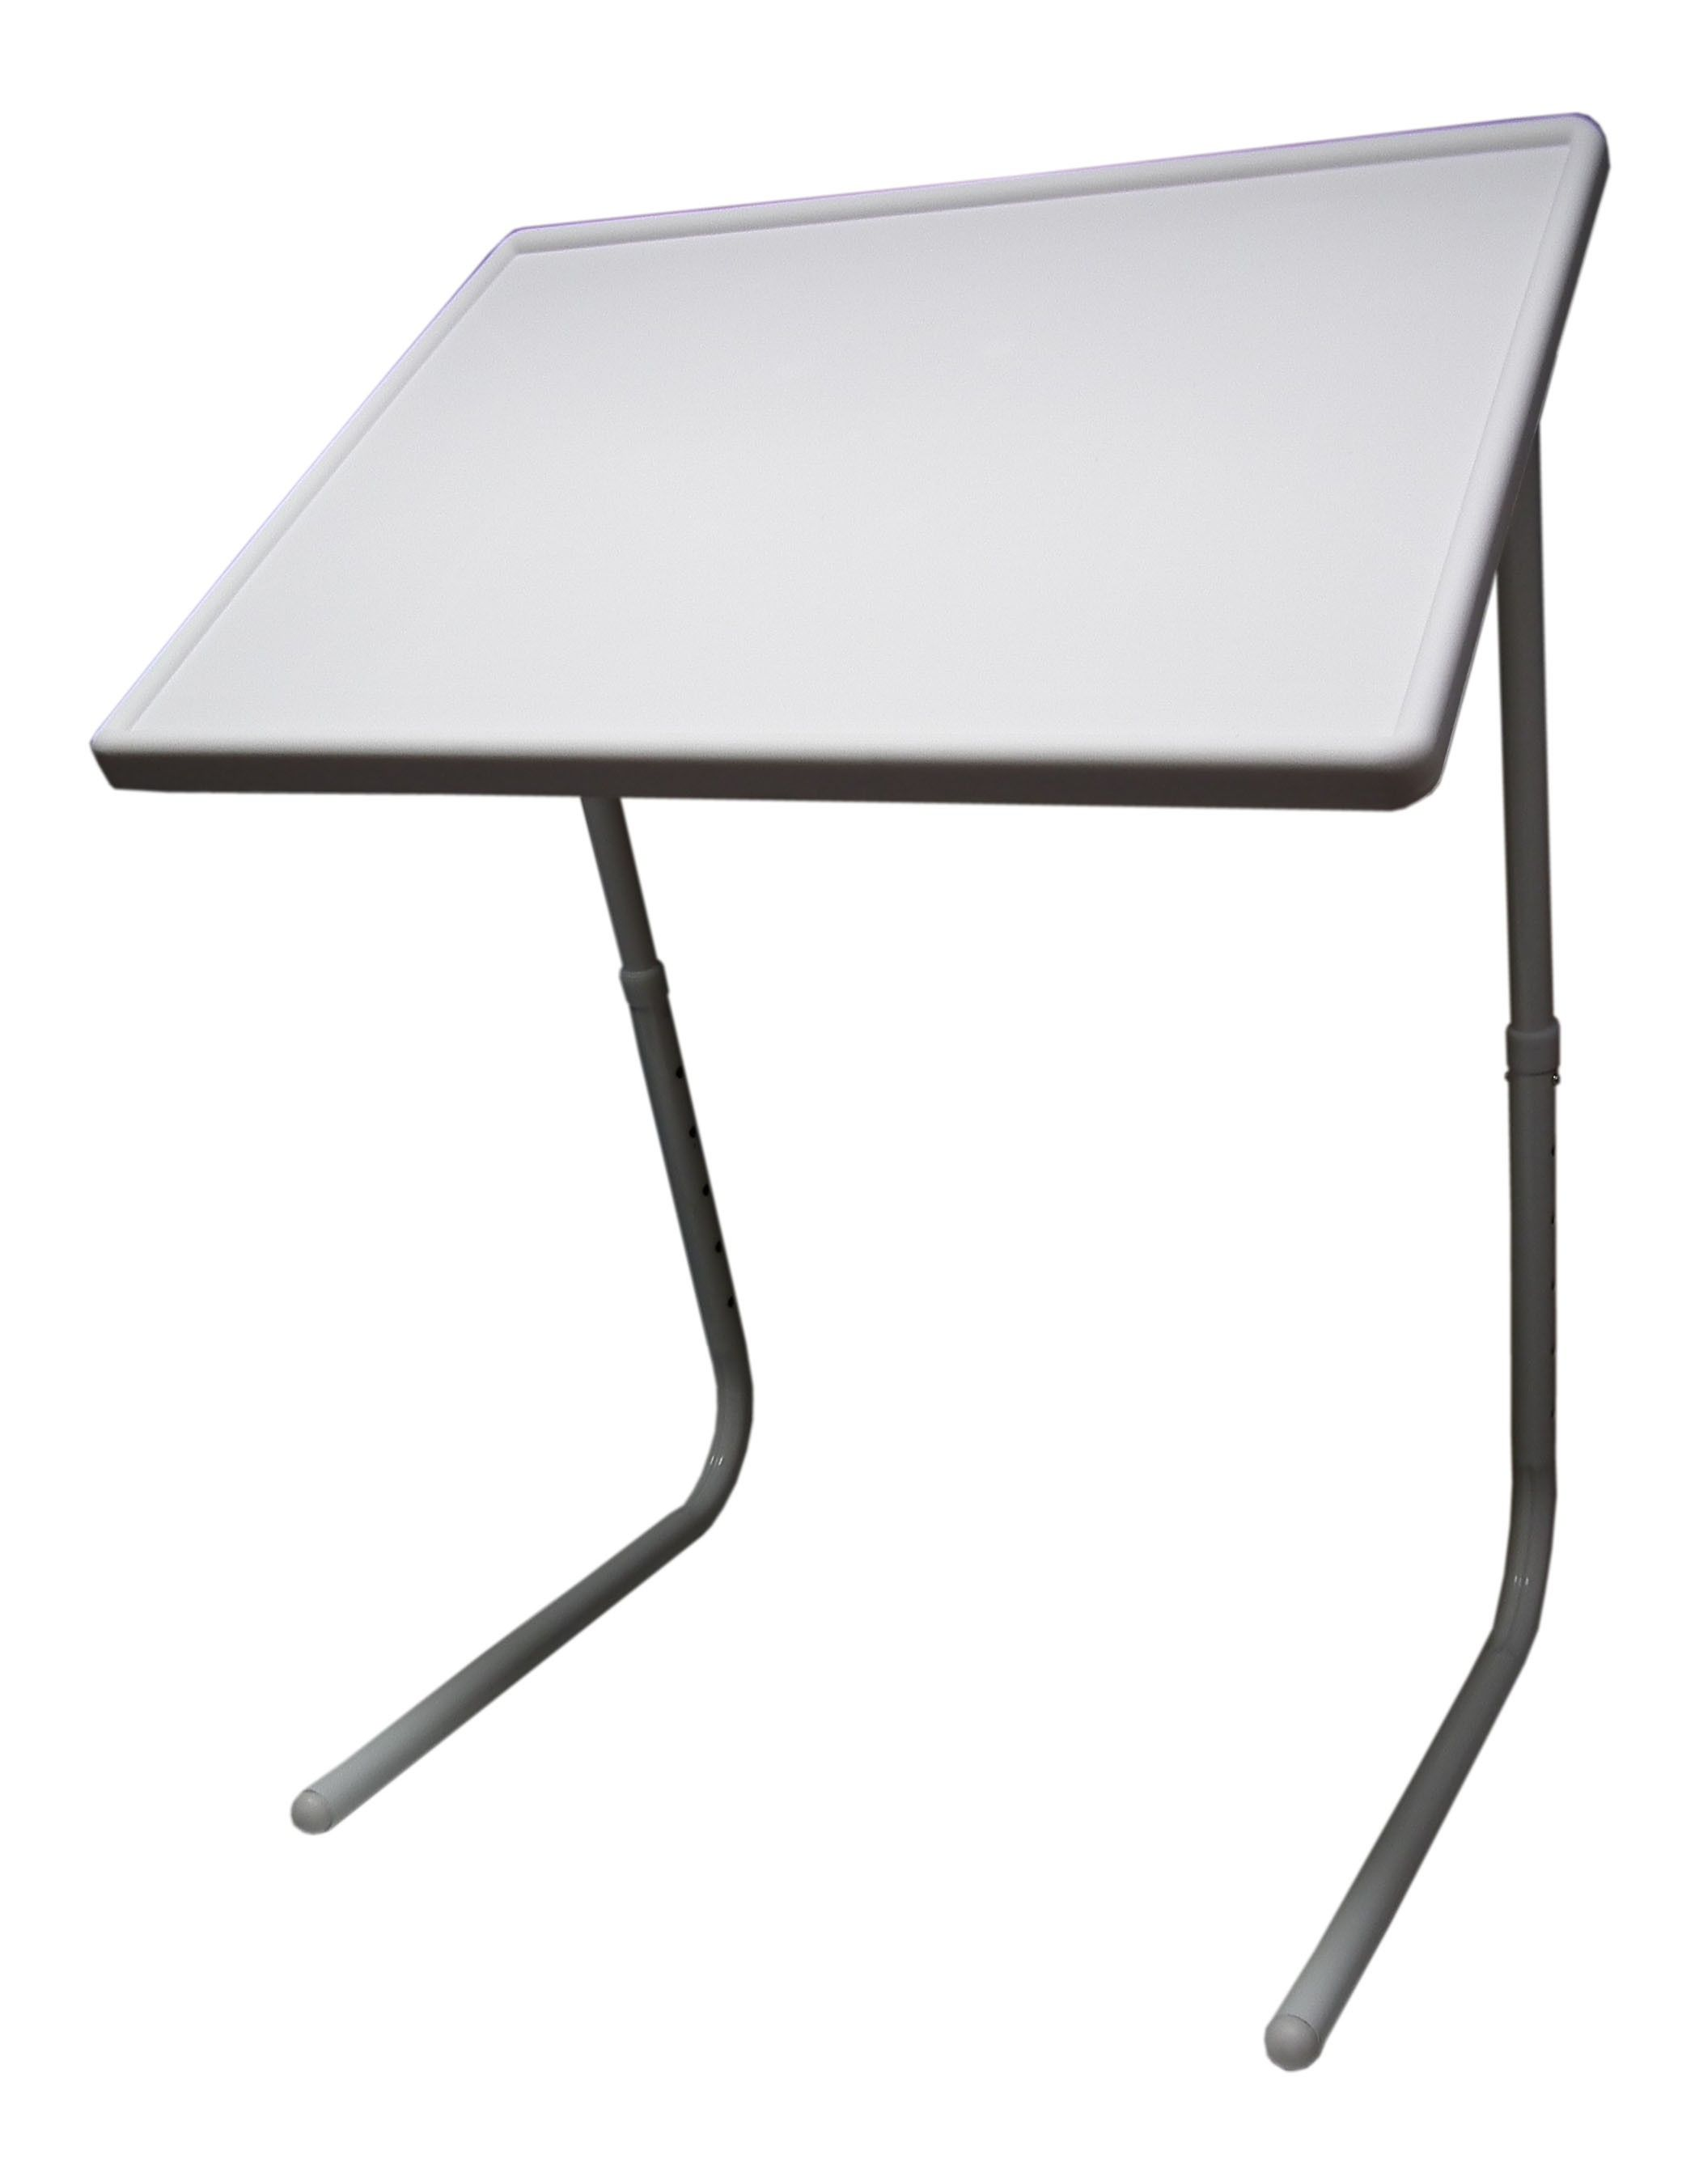 Table mate a portable multipurpose table for indoor or outdoor table mate a portable multipurpose table for indoor or outdoor use with this geotapseo Gallery